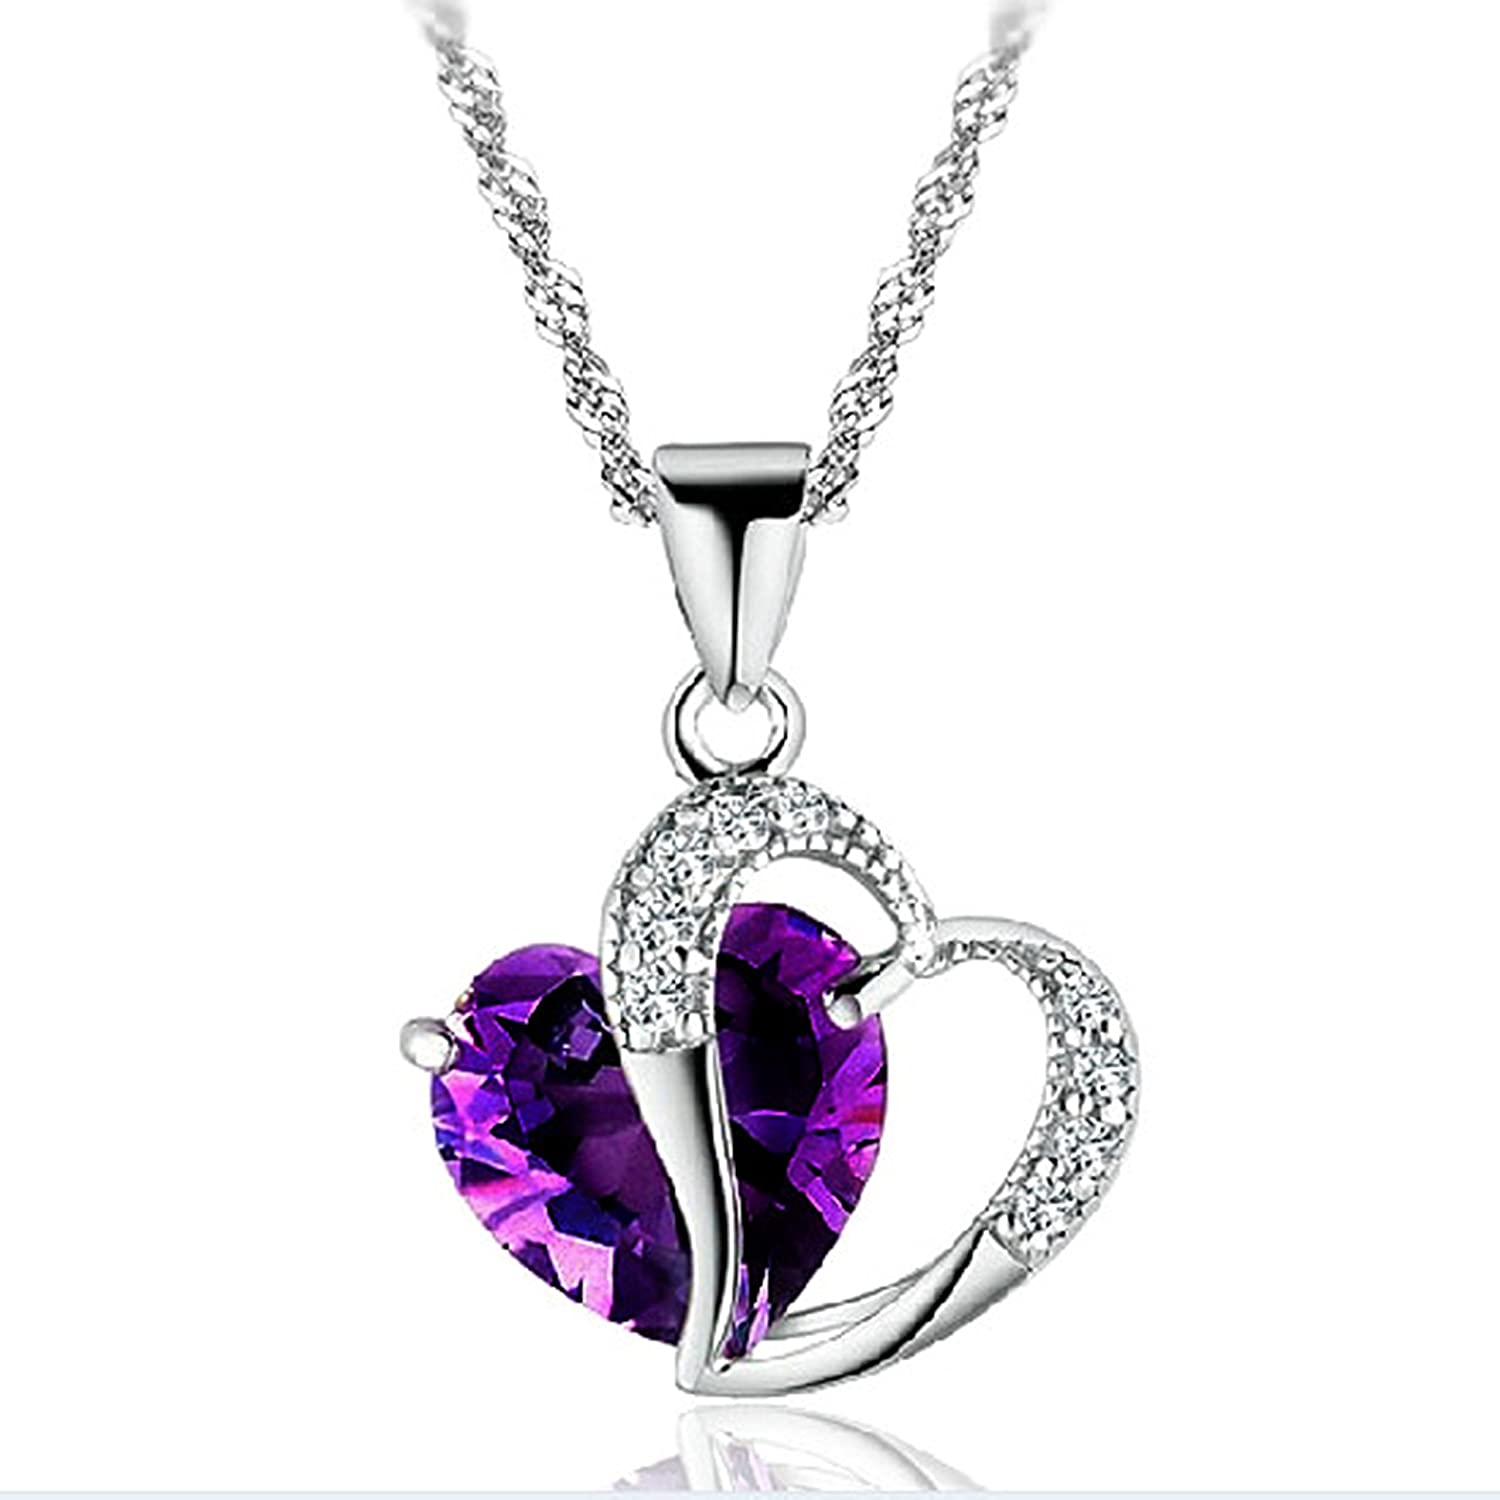 gottlieb stephanie fine products stone necklace purple jewelry colored img heart